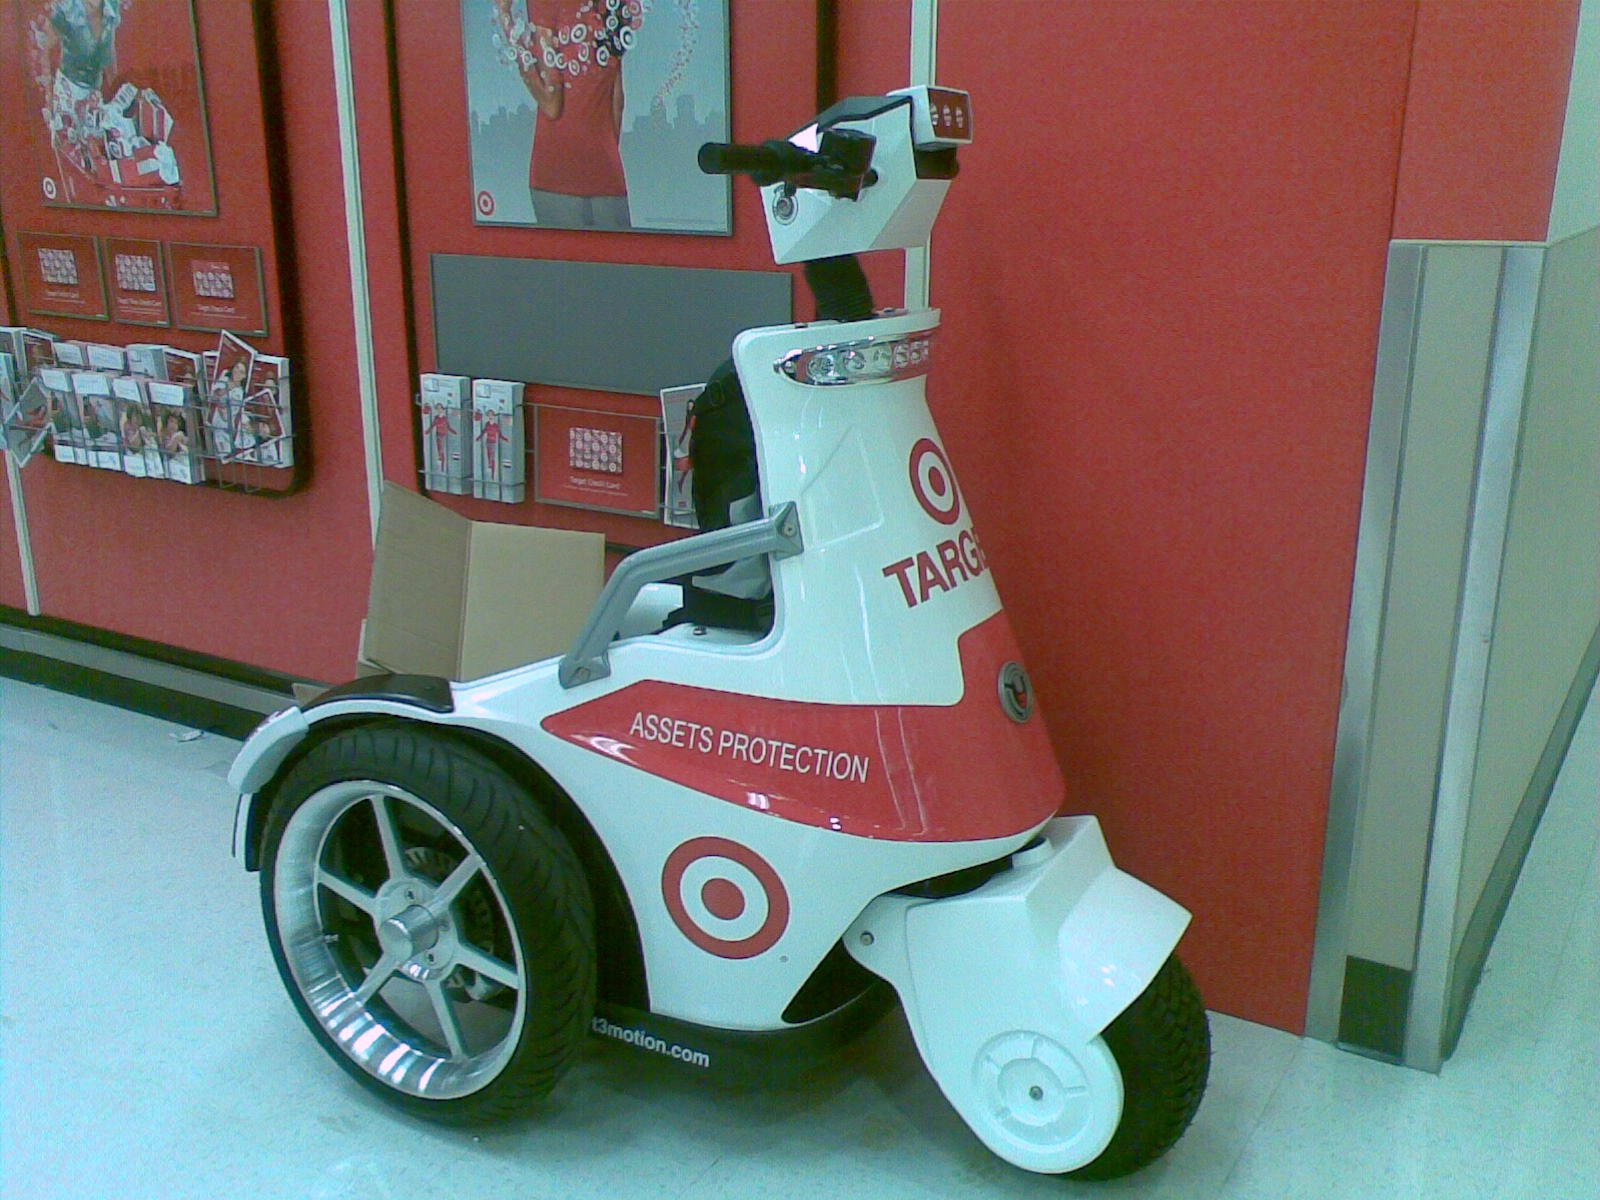 TARGET SUCKS!: Target Asset Protection Scooter Photos